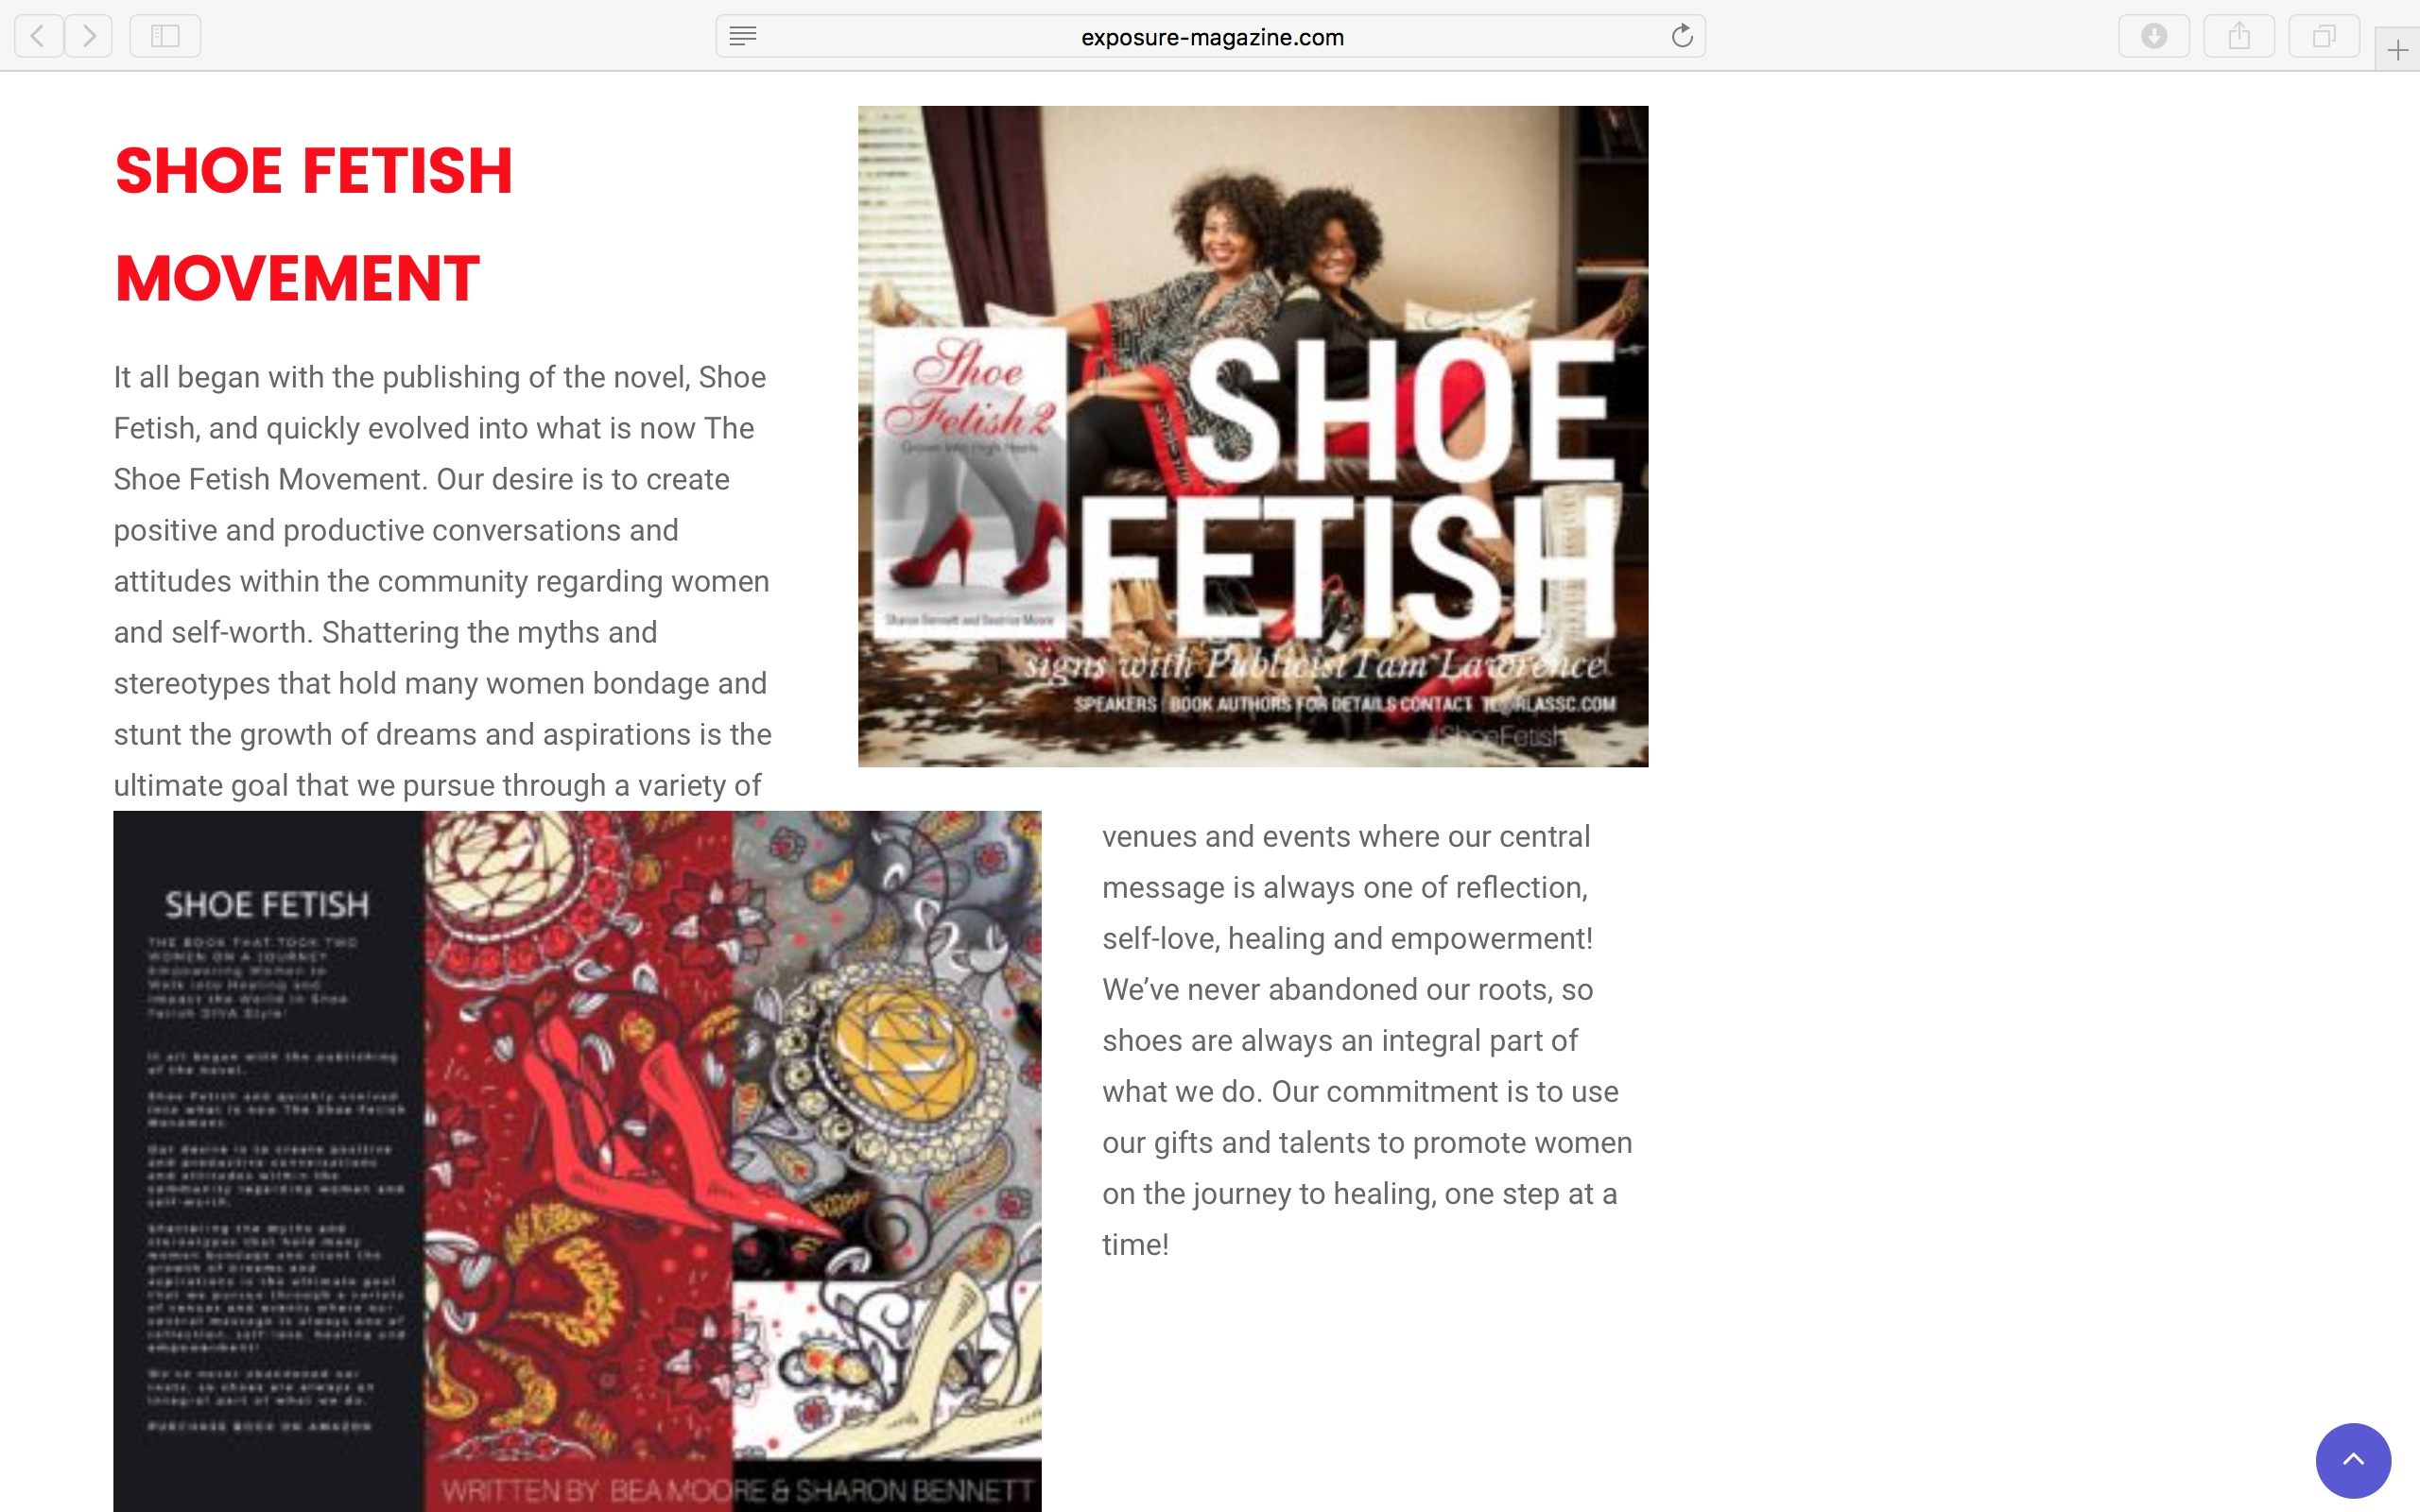 The Shoe Fetish Movement Highlighted